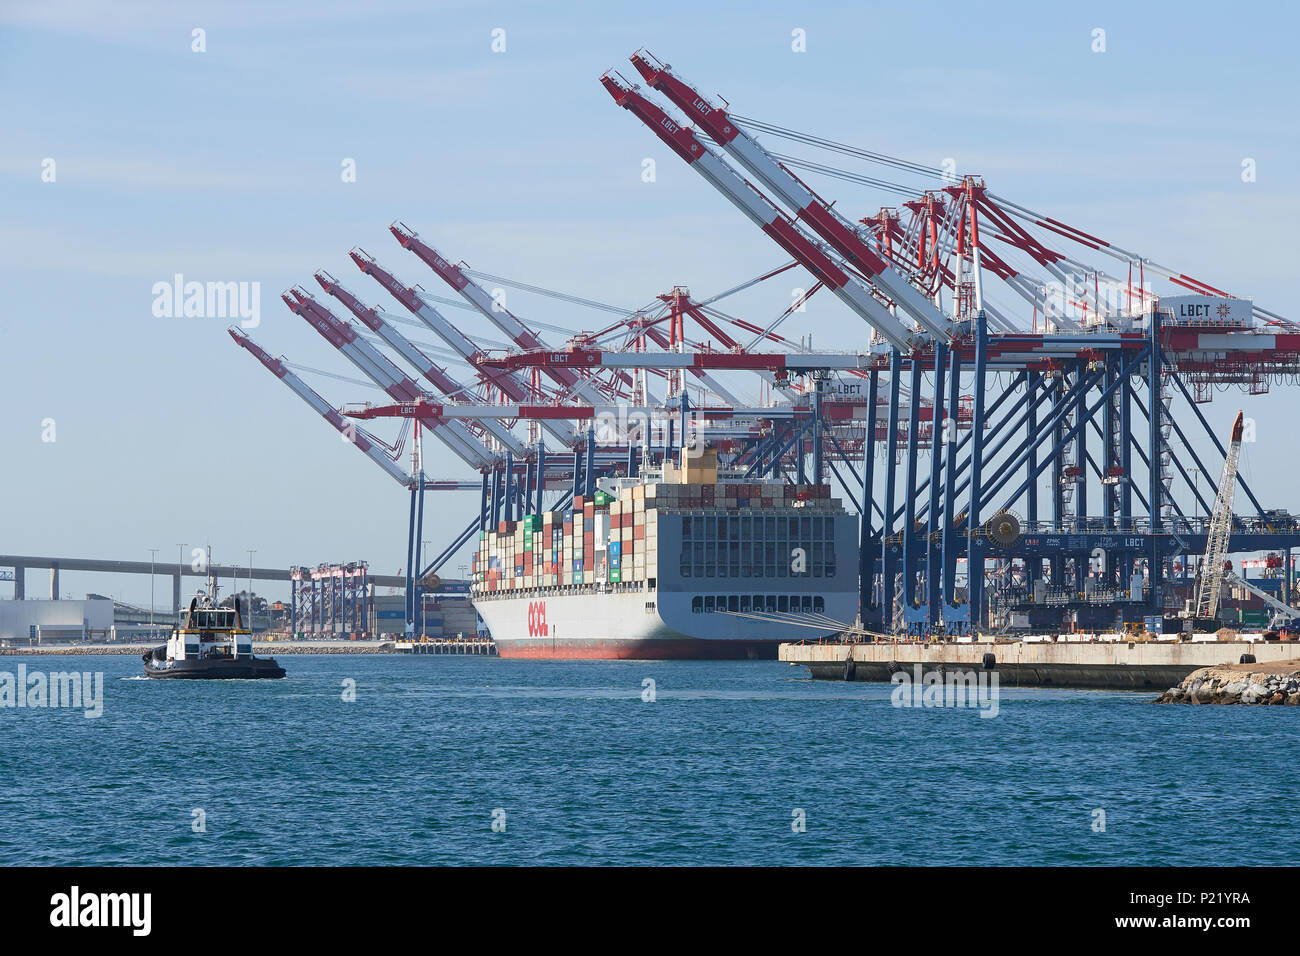 Giant Container Ship, OOCL LONDON, About To Depart The Long Beach Container Terminal, A Tractor Tug Approaching The Ship. - Stock Image